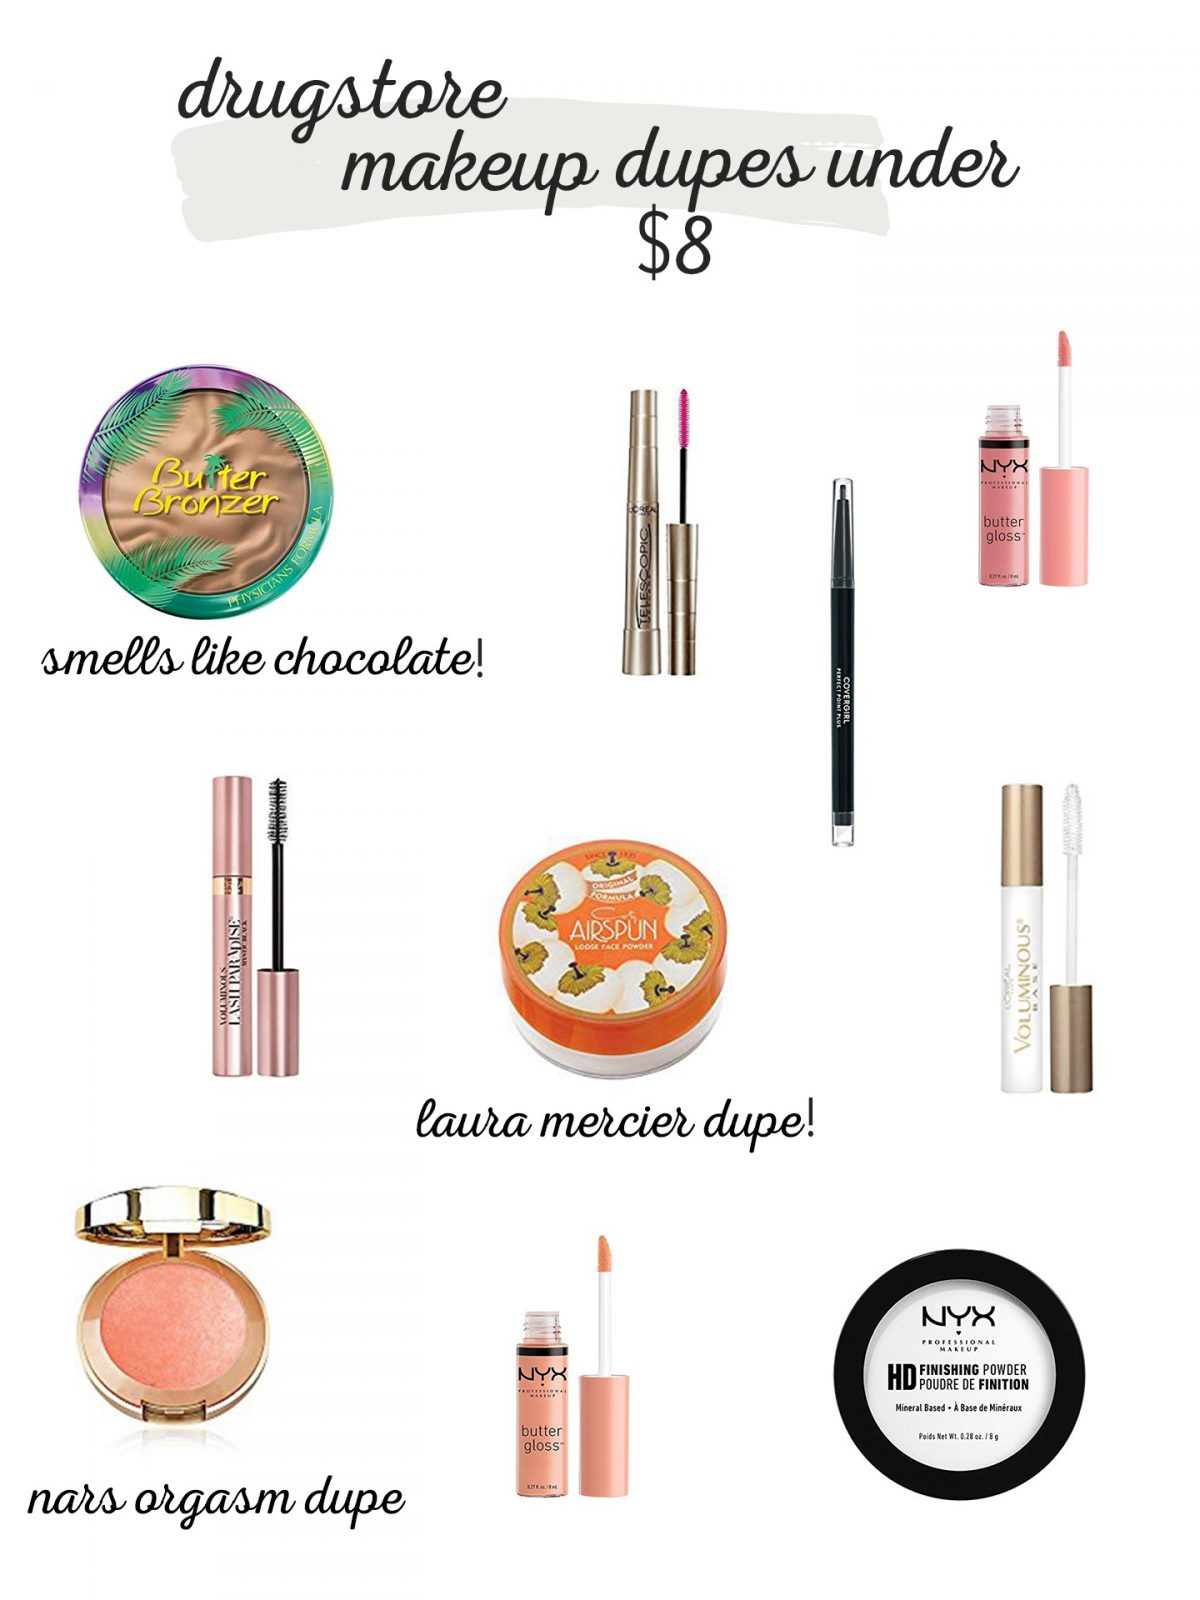 drugstore makeup dupes under $8